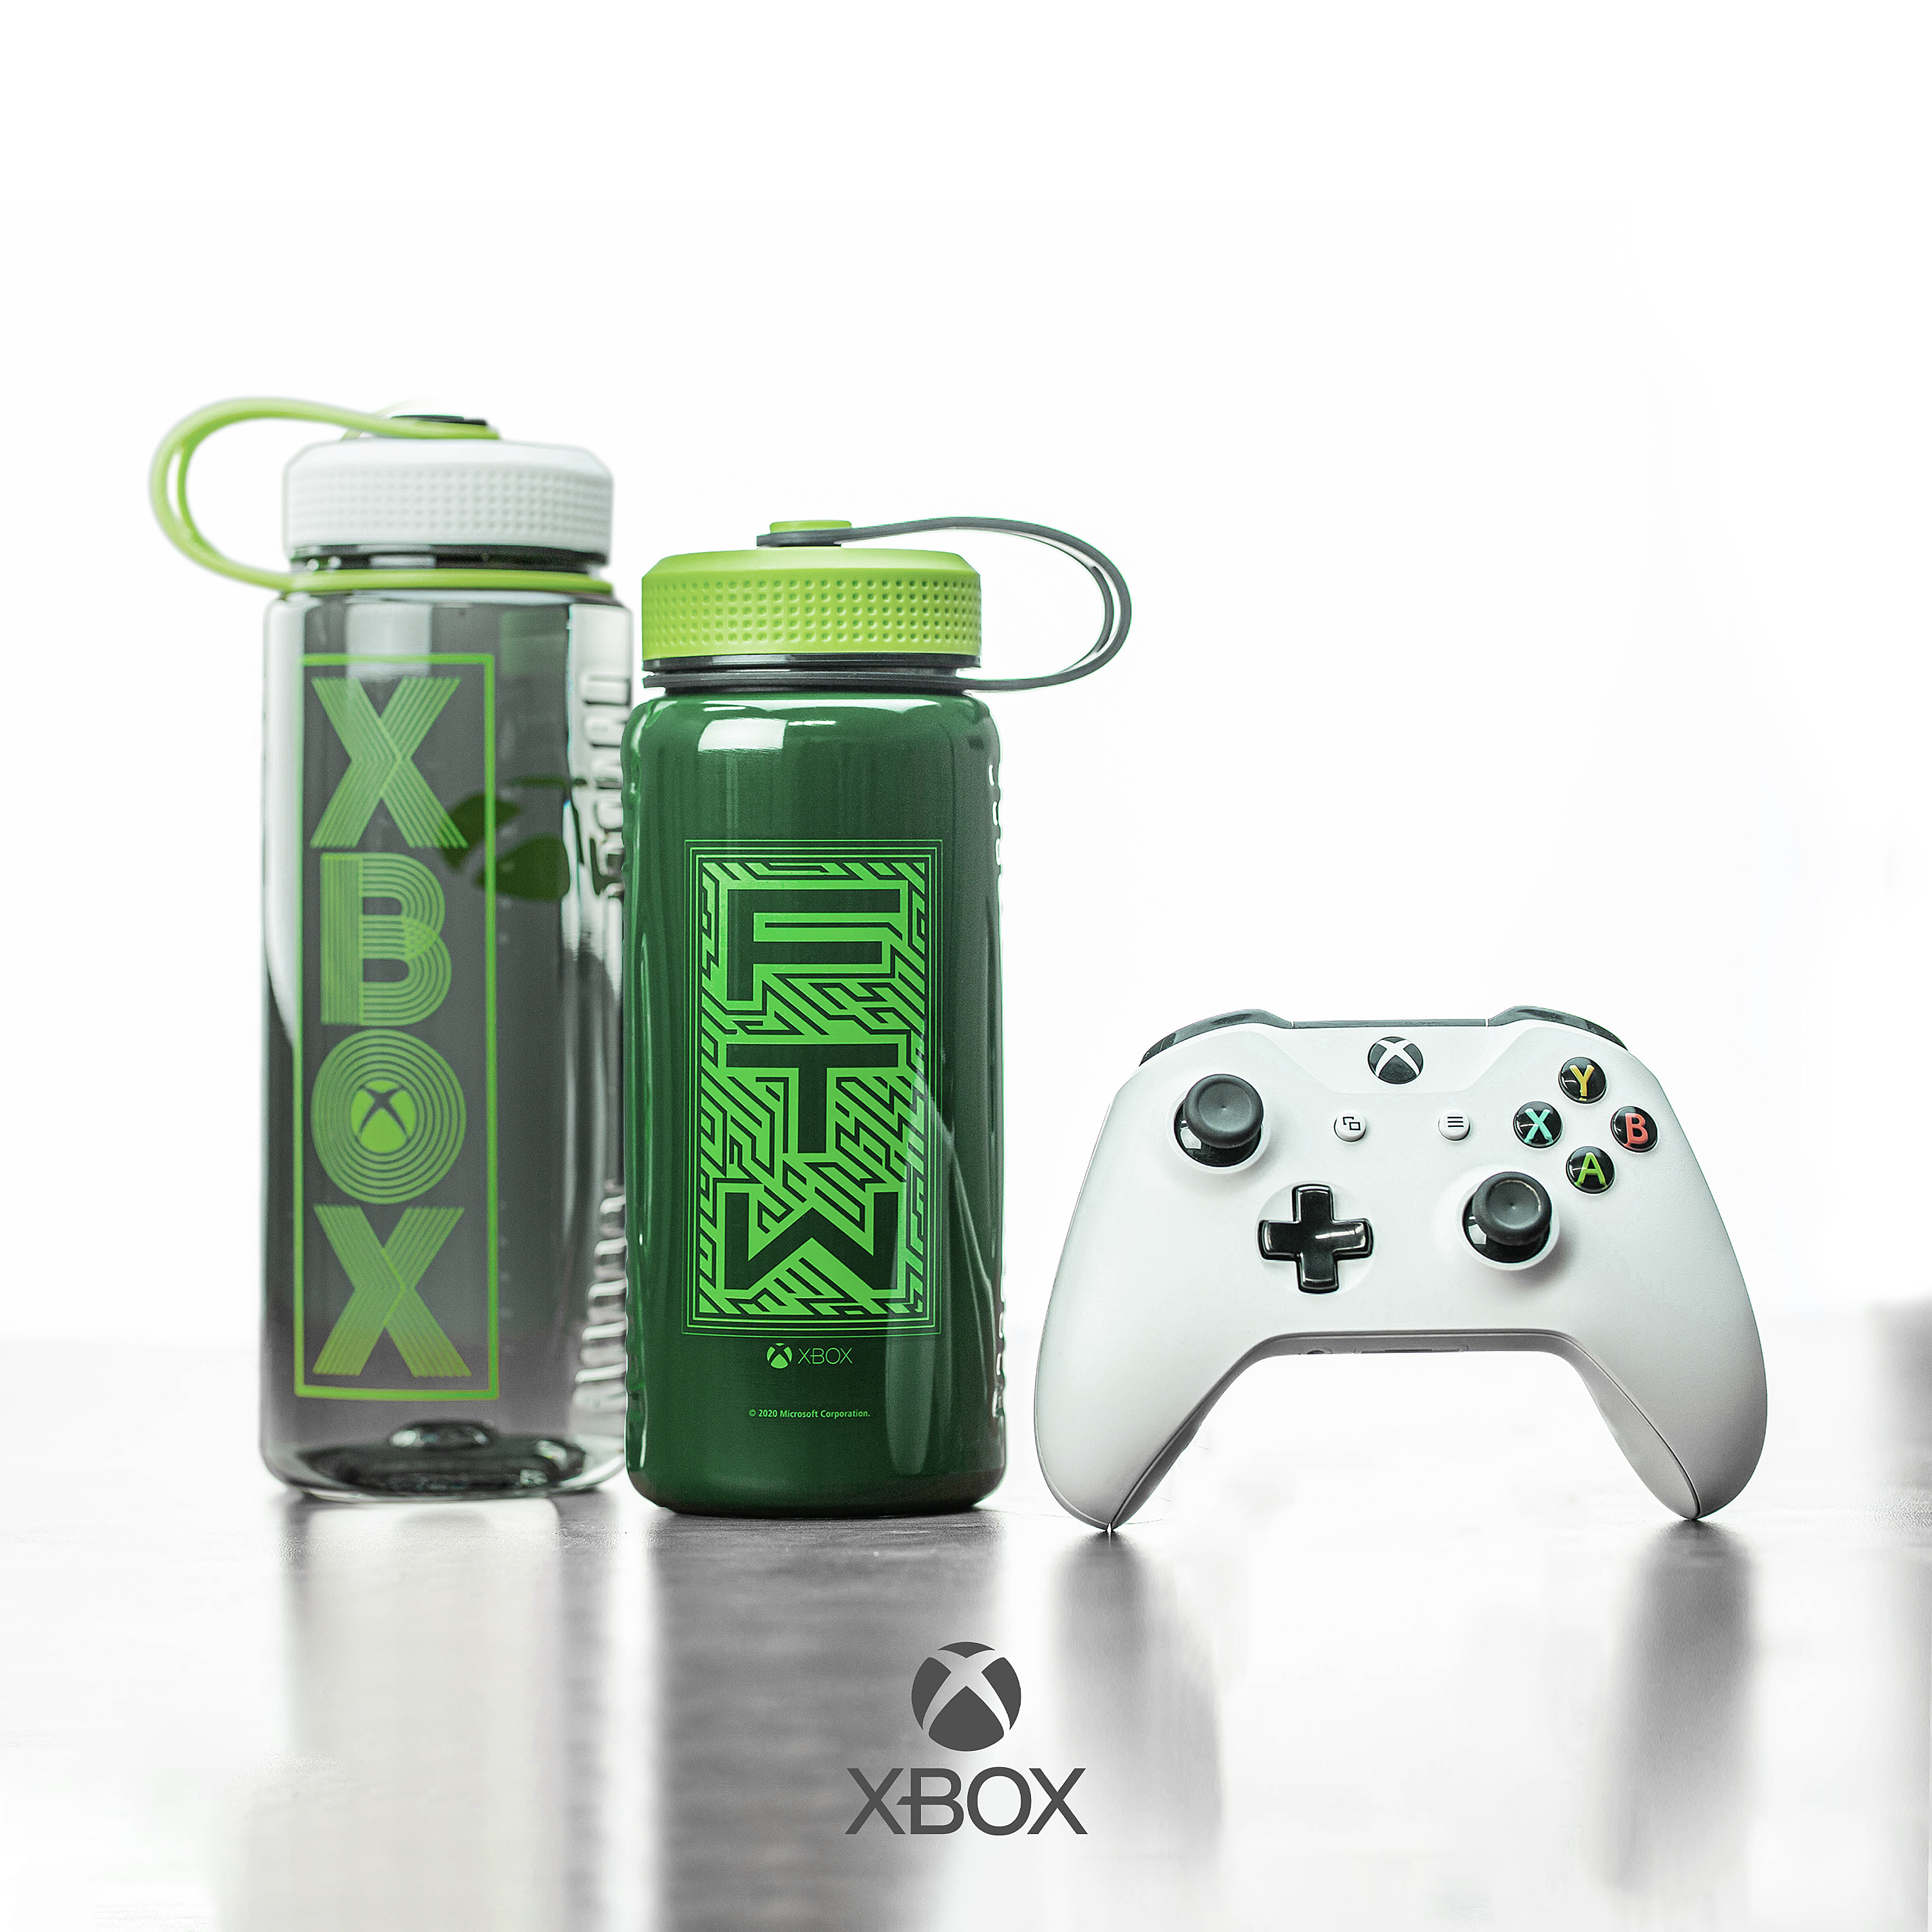 Xbox 24 ounce Stainless Steel Insulated Water Bottle, For the Win slideshow image 9